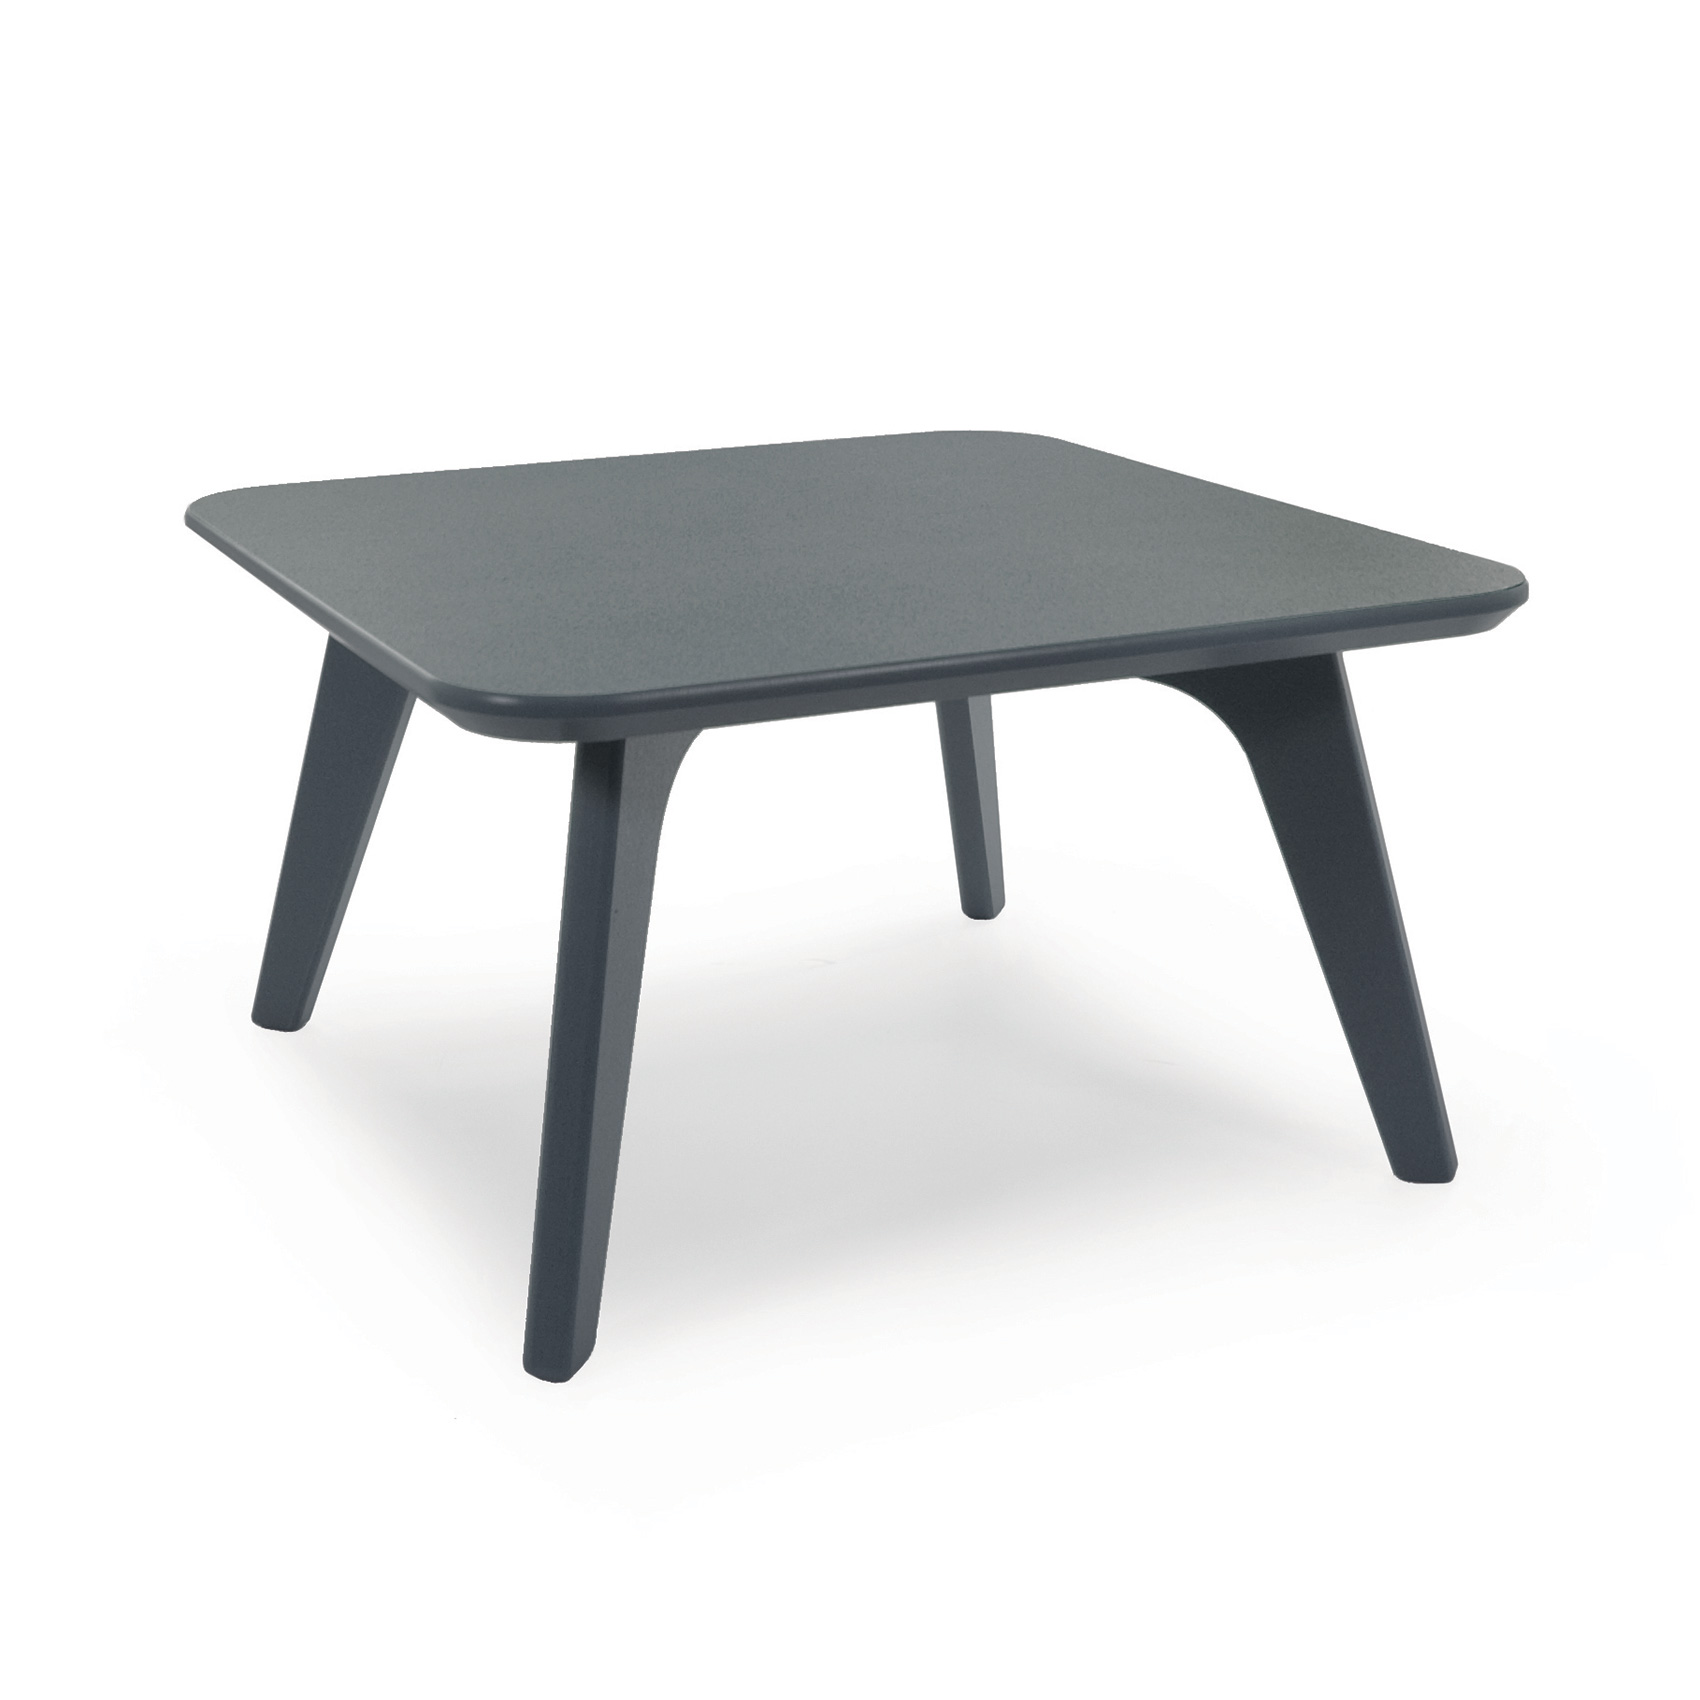 square end table for outdoors loll designs satellite grey black outdoor product thumbnail placeholder metal magnussen furniture quality reviews cushions clearance glass breakfast